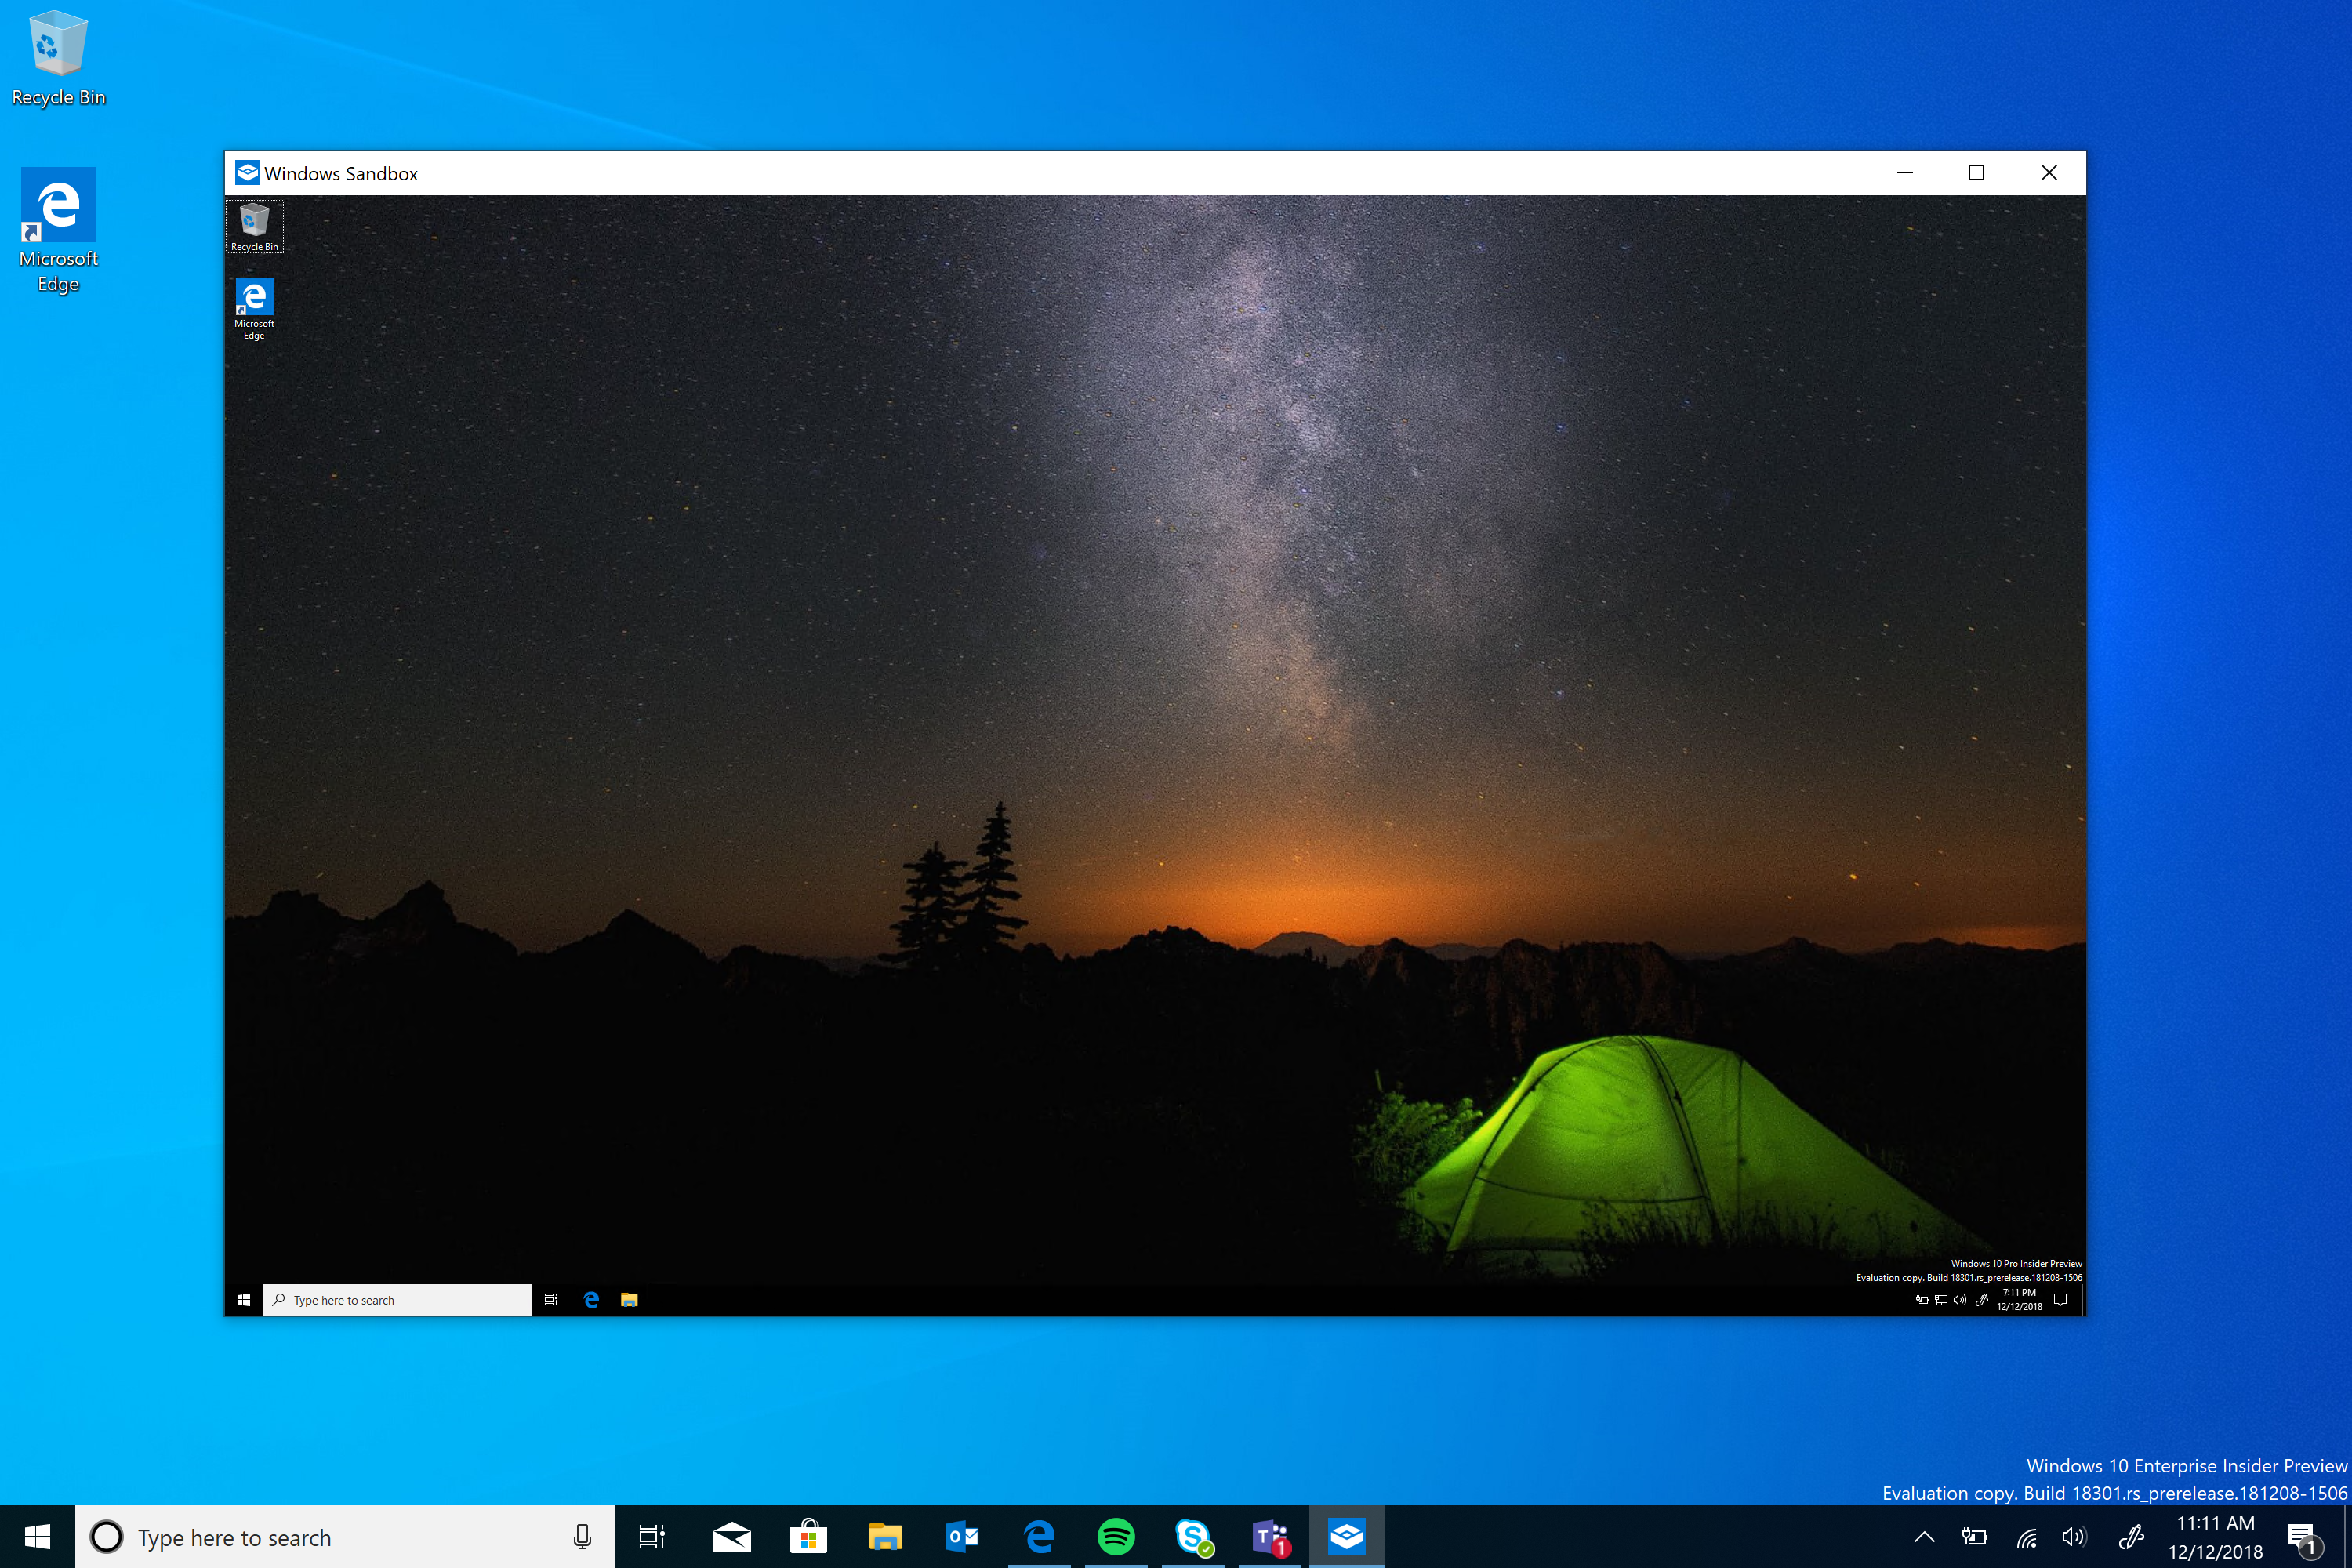 Was ist neu in Build 18305 (19H1)?